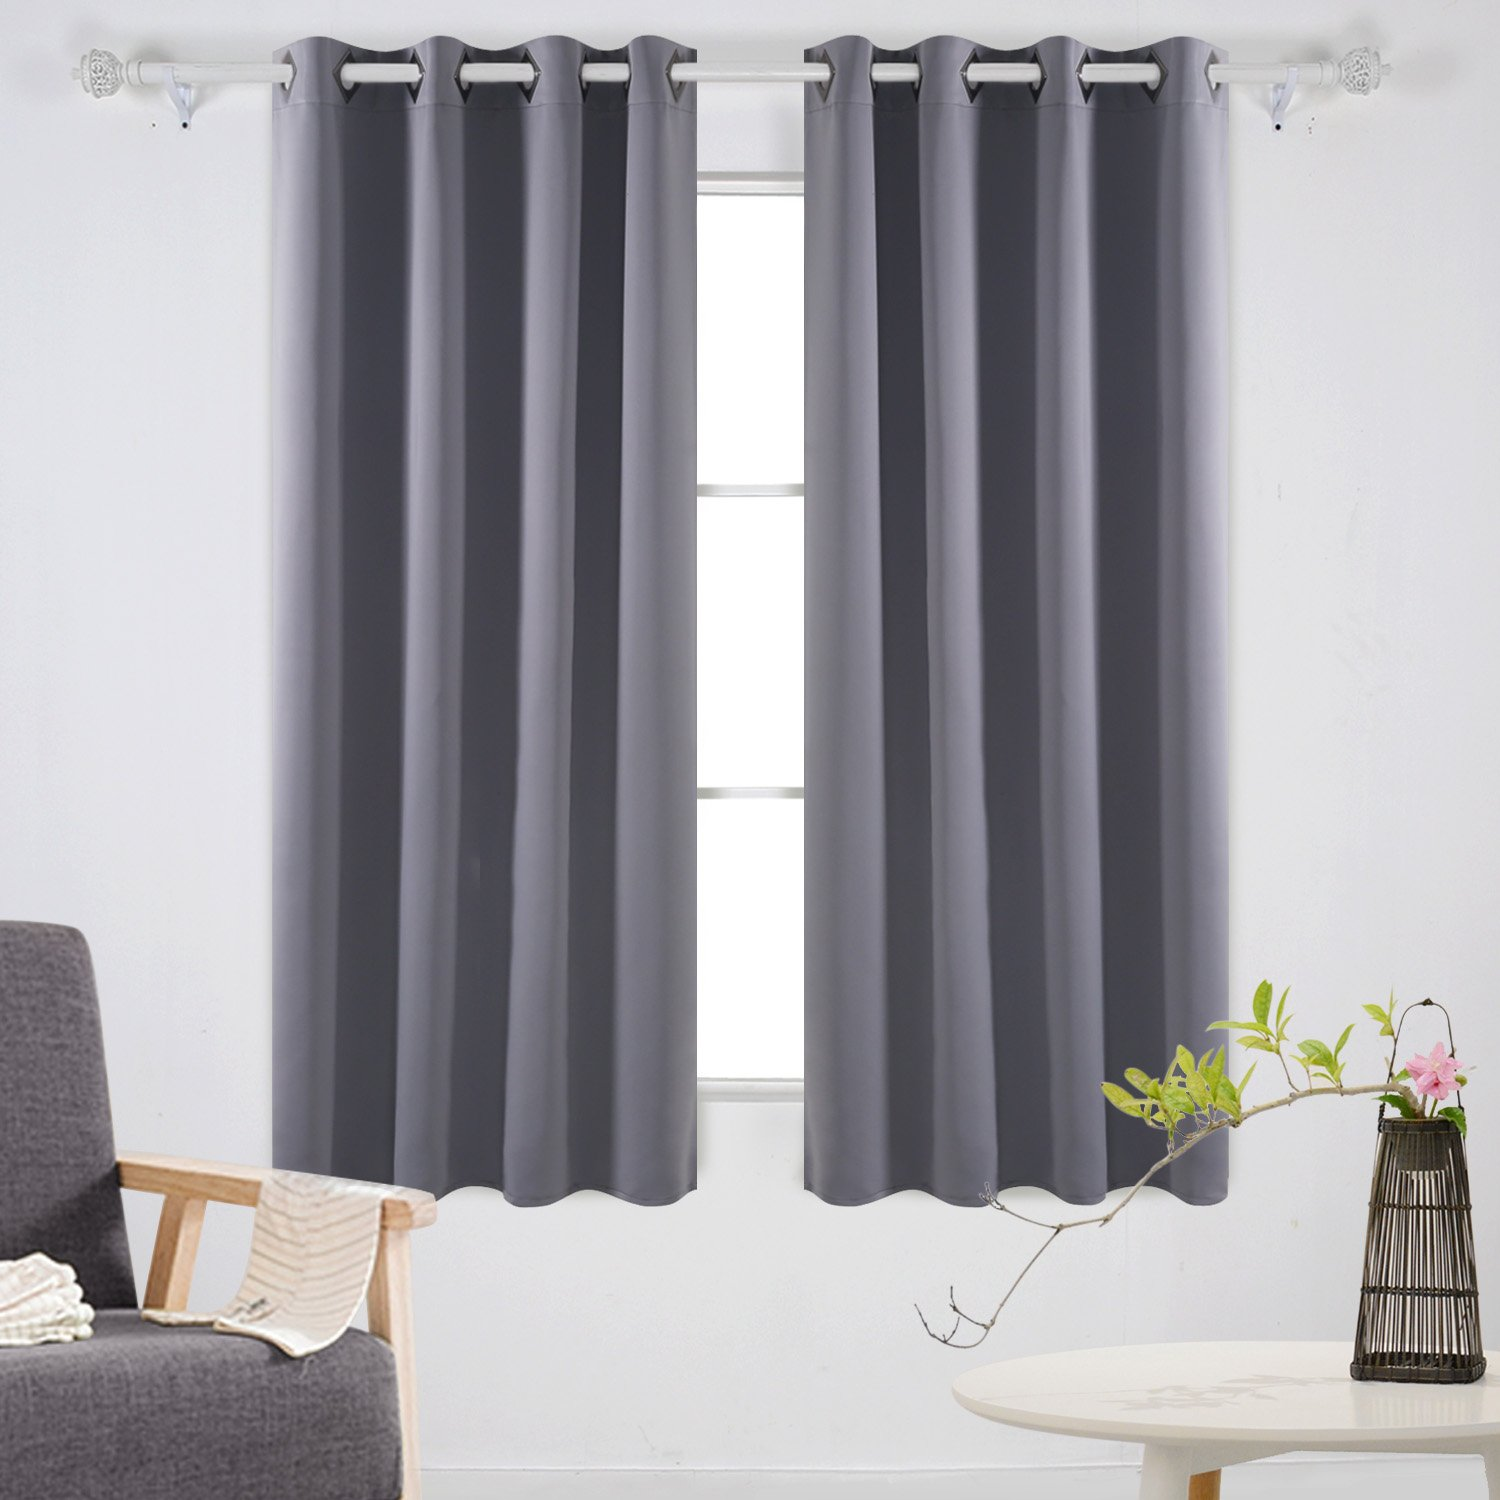 Amazon.com: Deconovo Solid Room Darkening Curtains Thermal ...